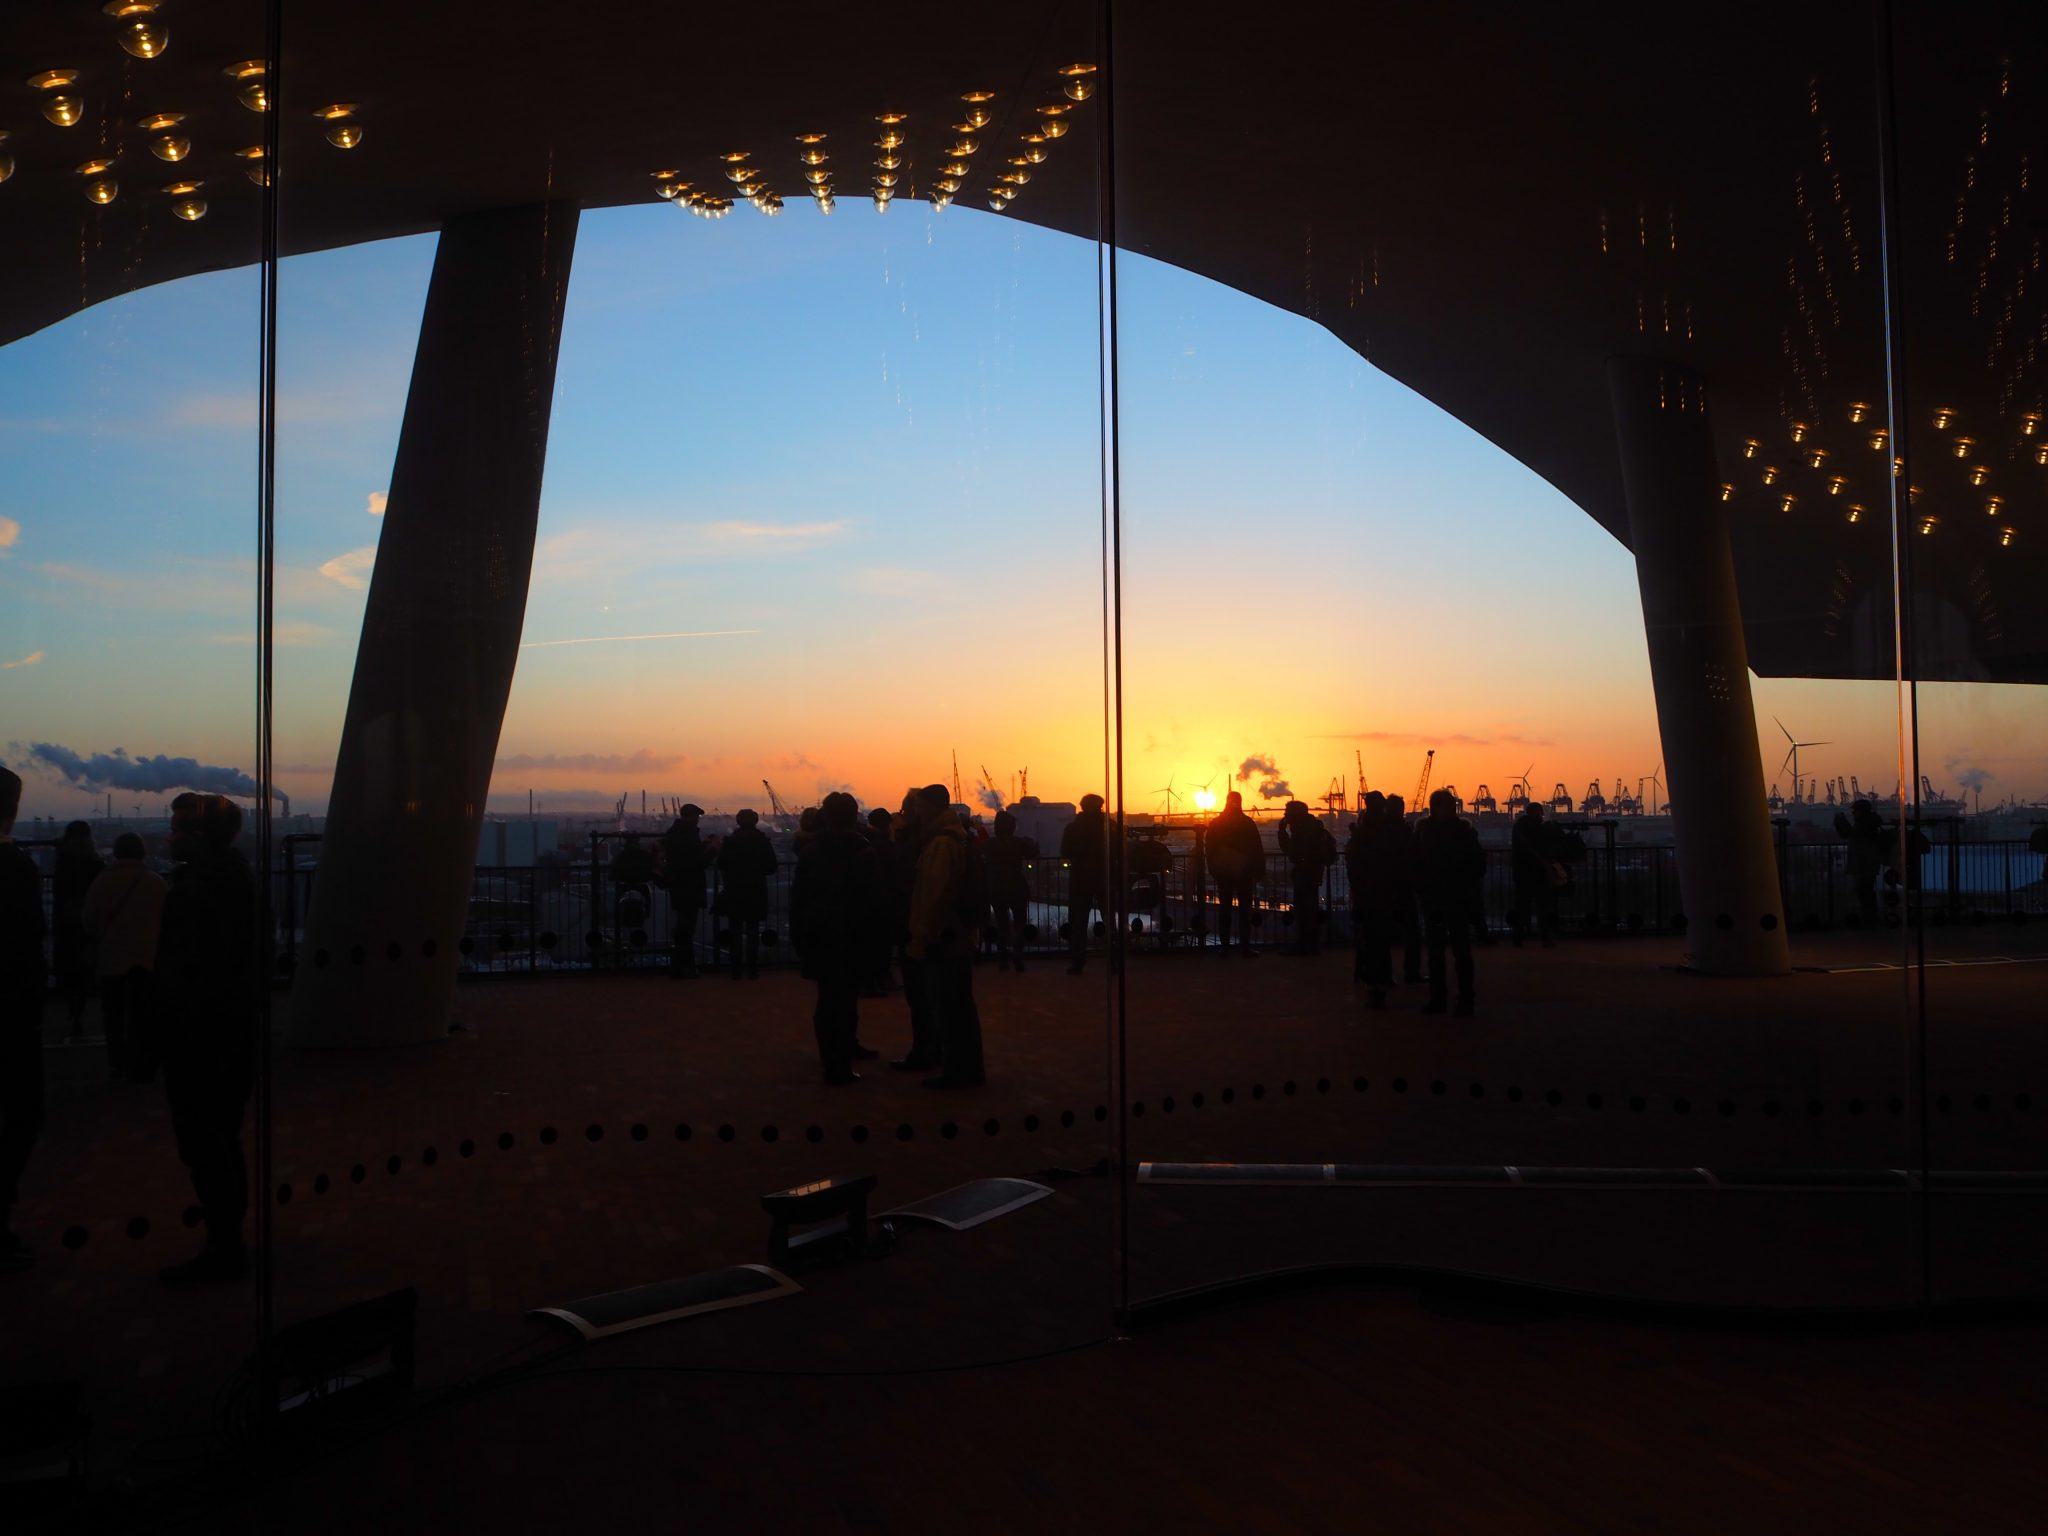 View of Harburg at sunset from The Elbphilharmonie